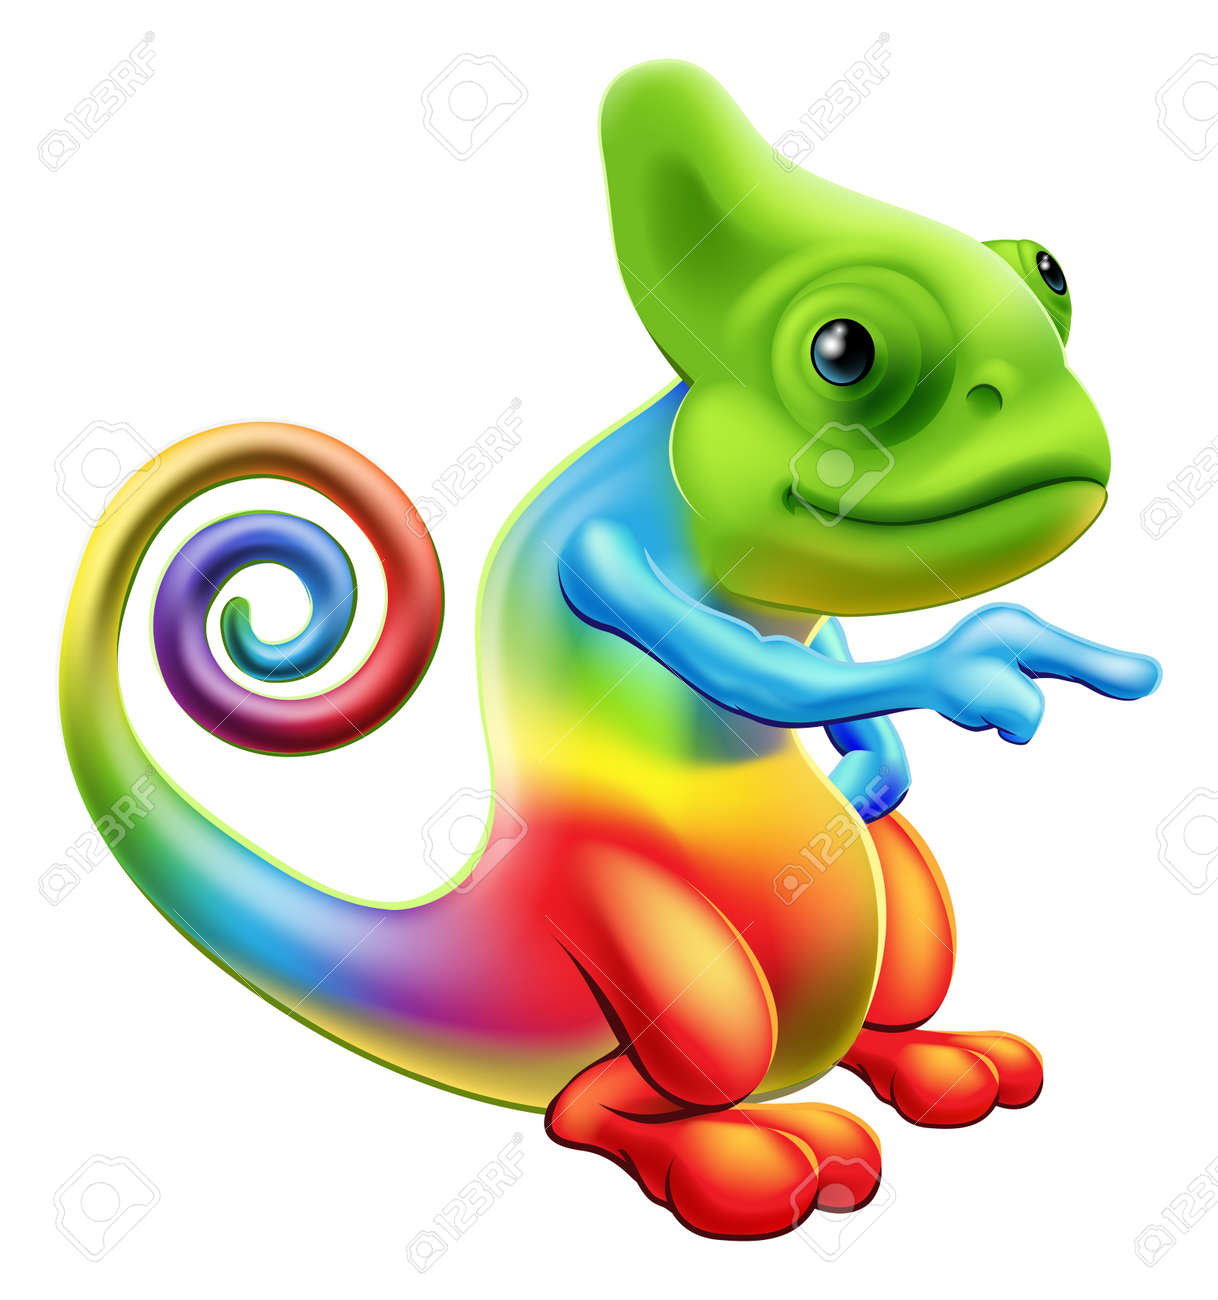 illustration of a cartoon rainbow chameleon mascot standing and rh 123rf com chameleon clipart png cute chameleon clipart